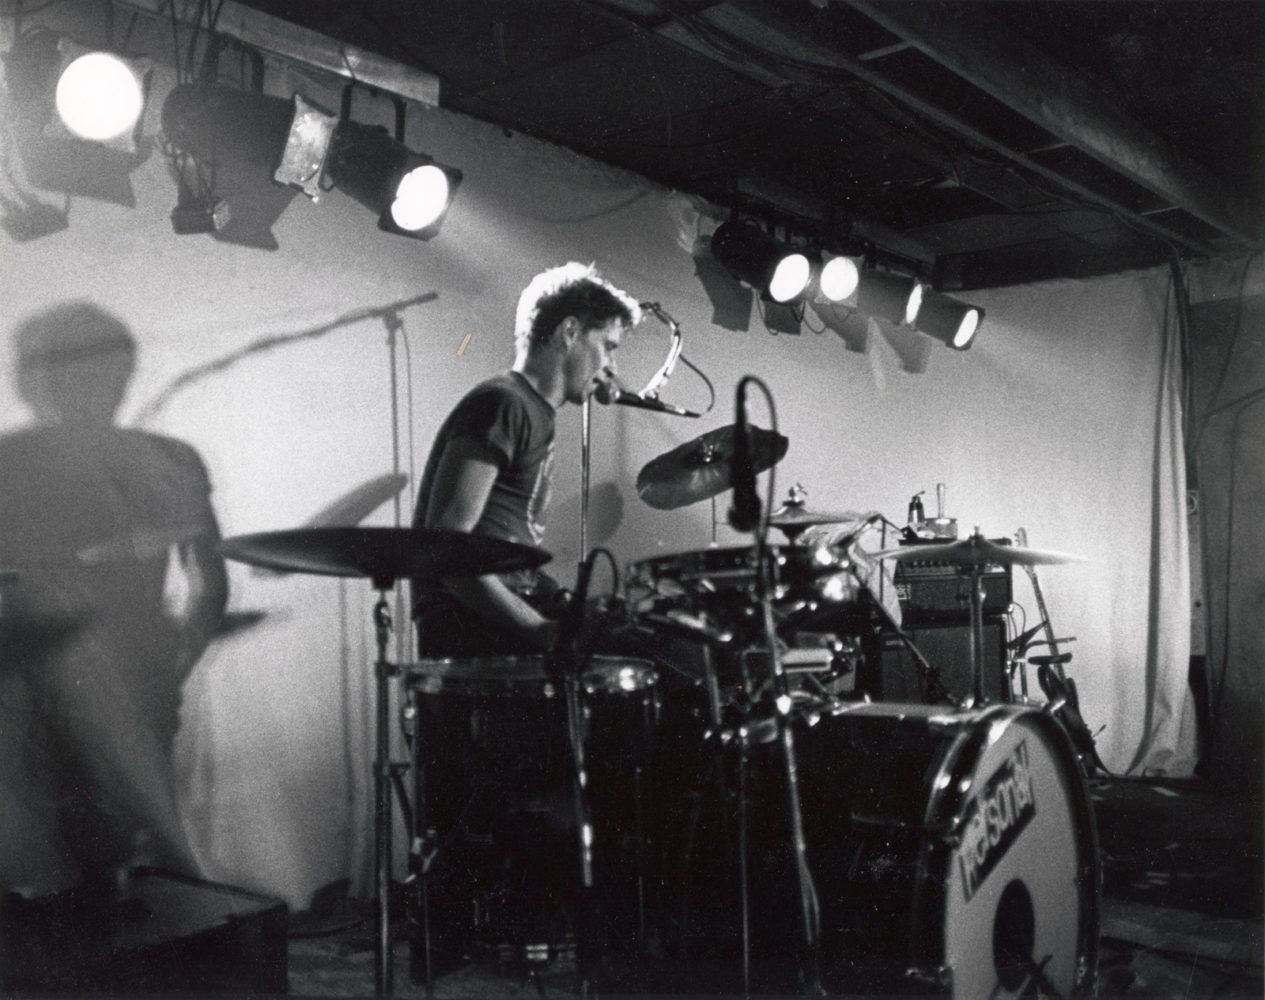 Paul playing drums with vocal mic at Scorgies